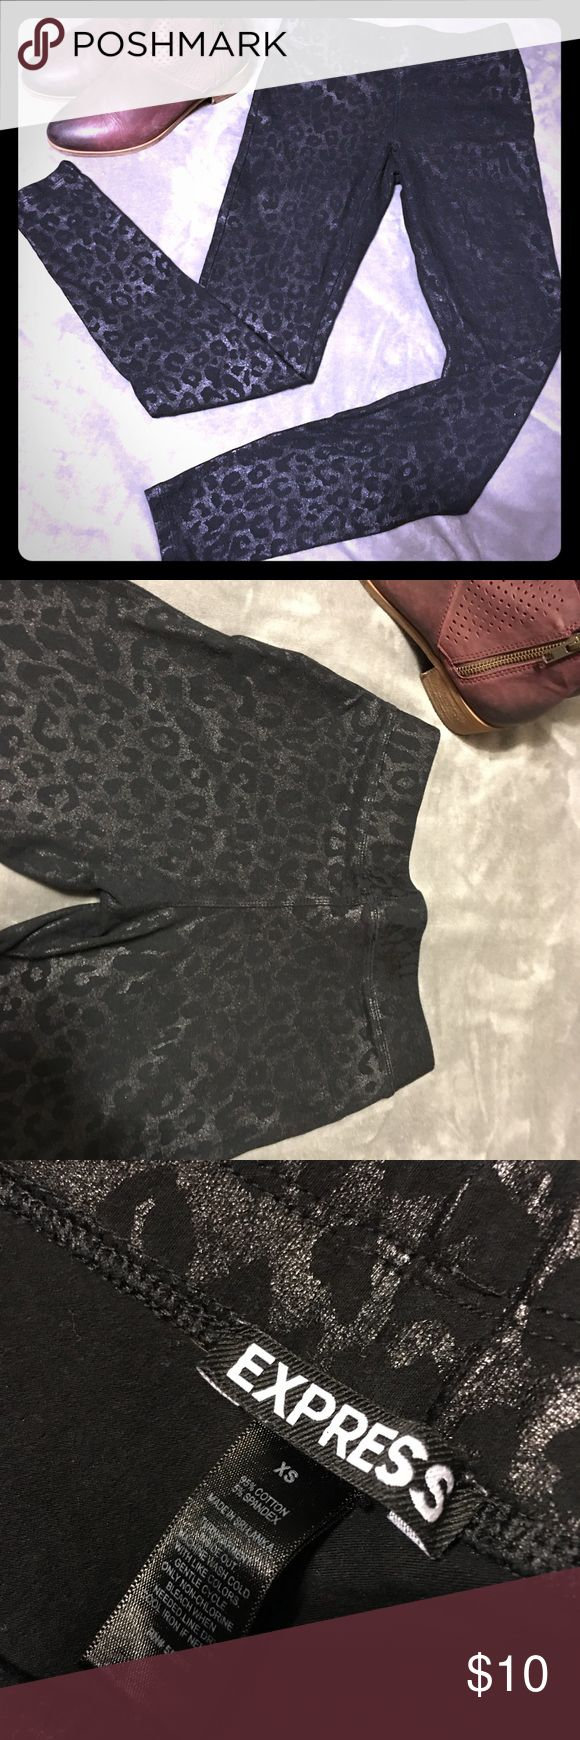 Express leopard print leggings Only worn once! No signs of wear. Fits a size 0...Comes from smoke free, pet free home. Shipping dates are Tuesday through Friday Express Pants Leggings